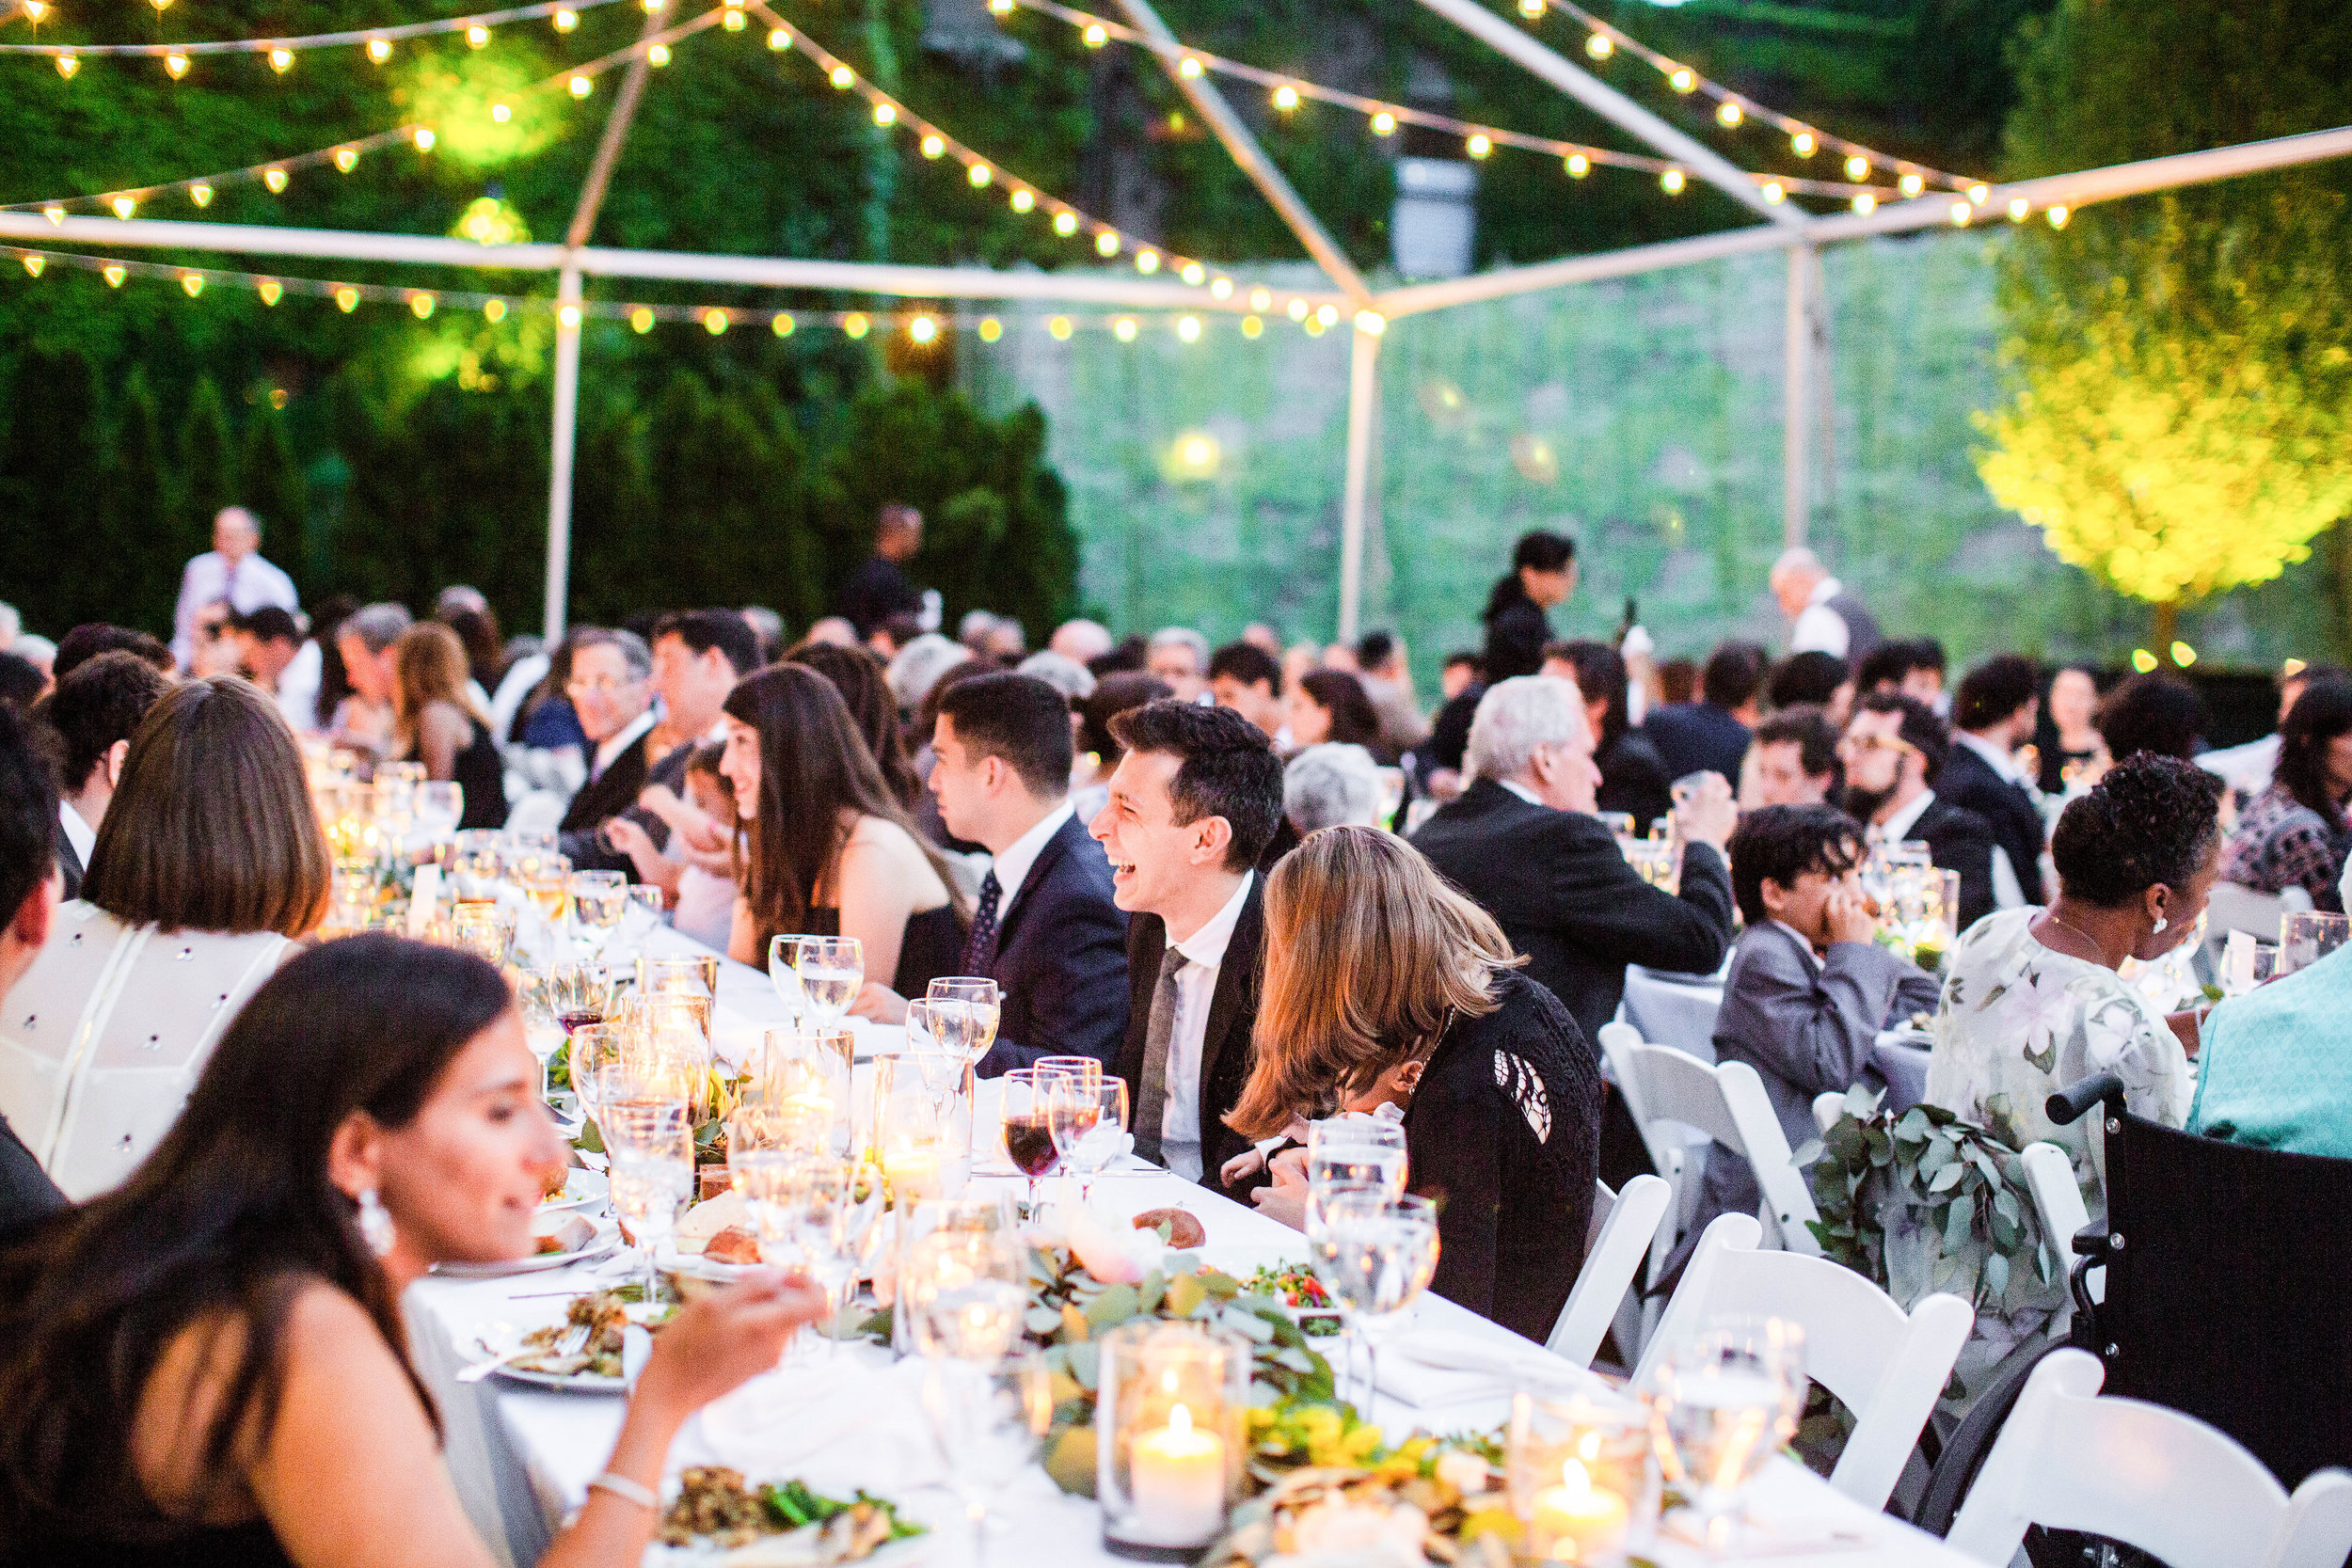 Tall & Small Events NYC, B+B, ModernUrban Industrial Jewish Outdoor Summer Wedding, New York City Real Wedding at The Foundry, LIC NY. Photo: Andrea Fischman Photography